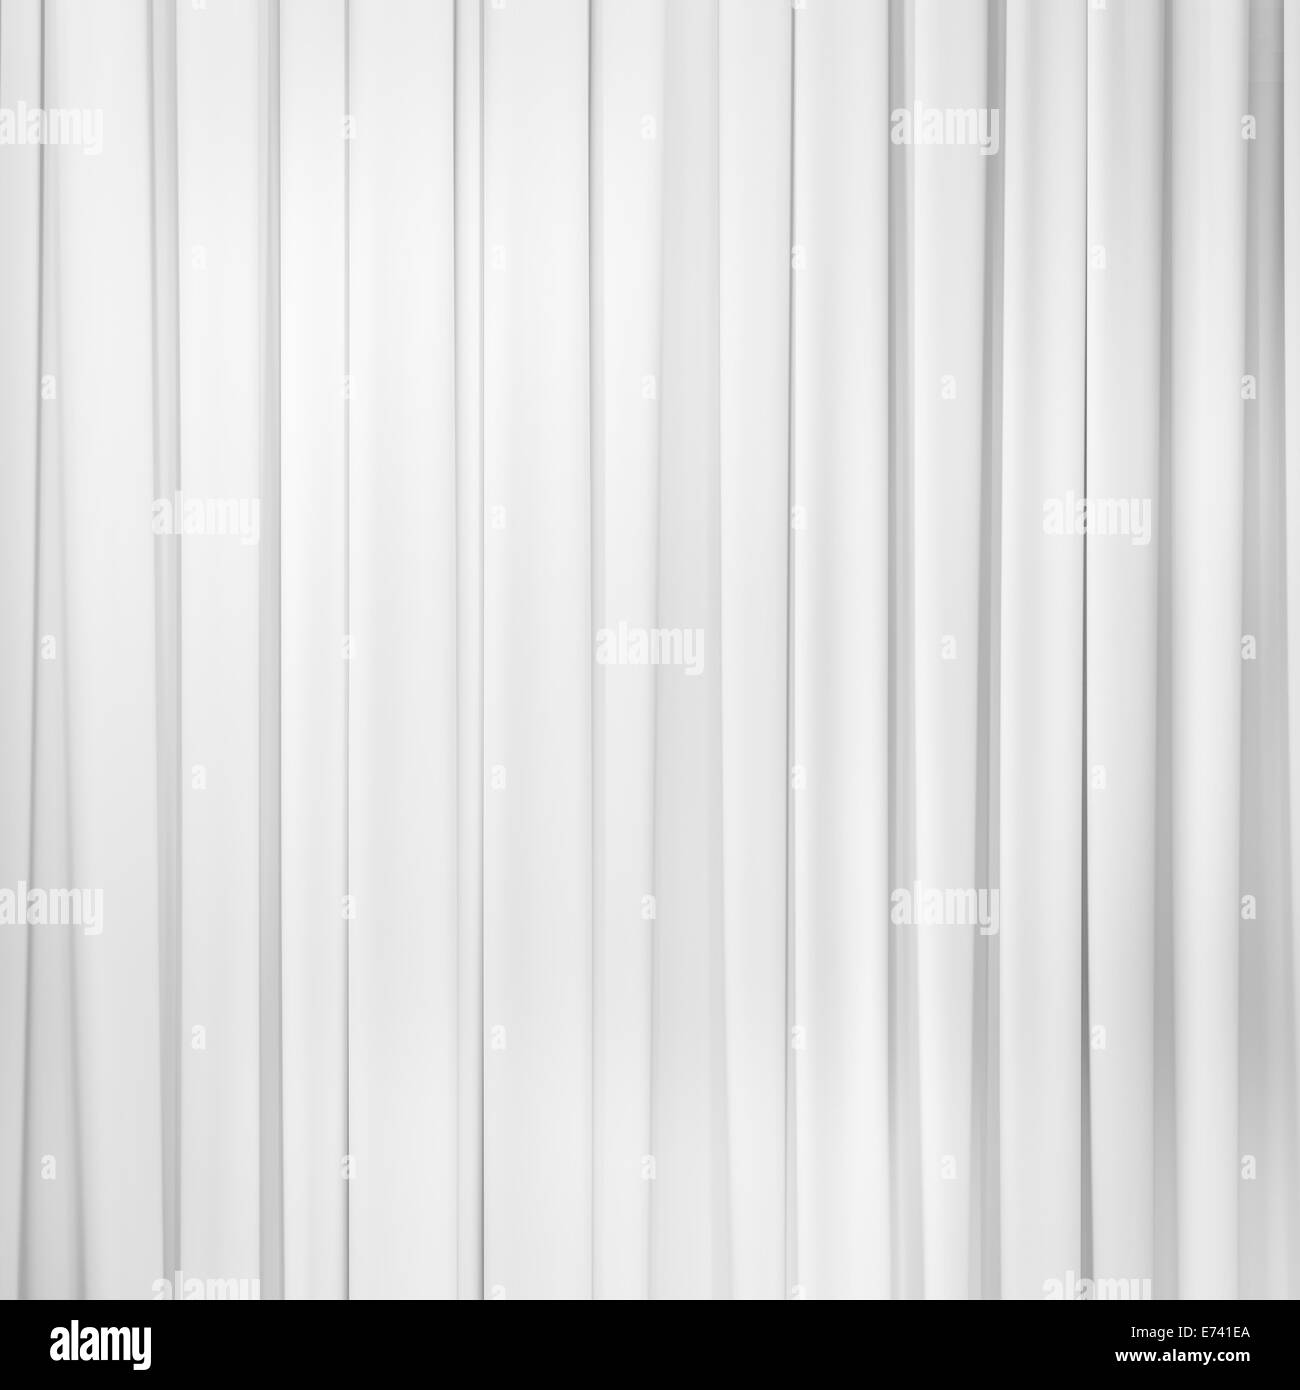 white curtain or drapes background - Stock Image